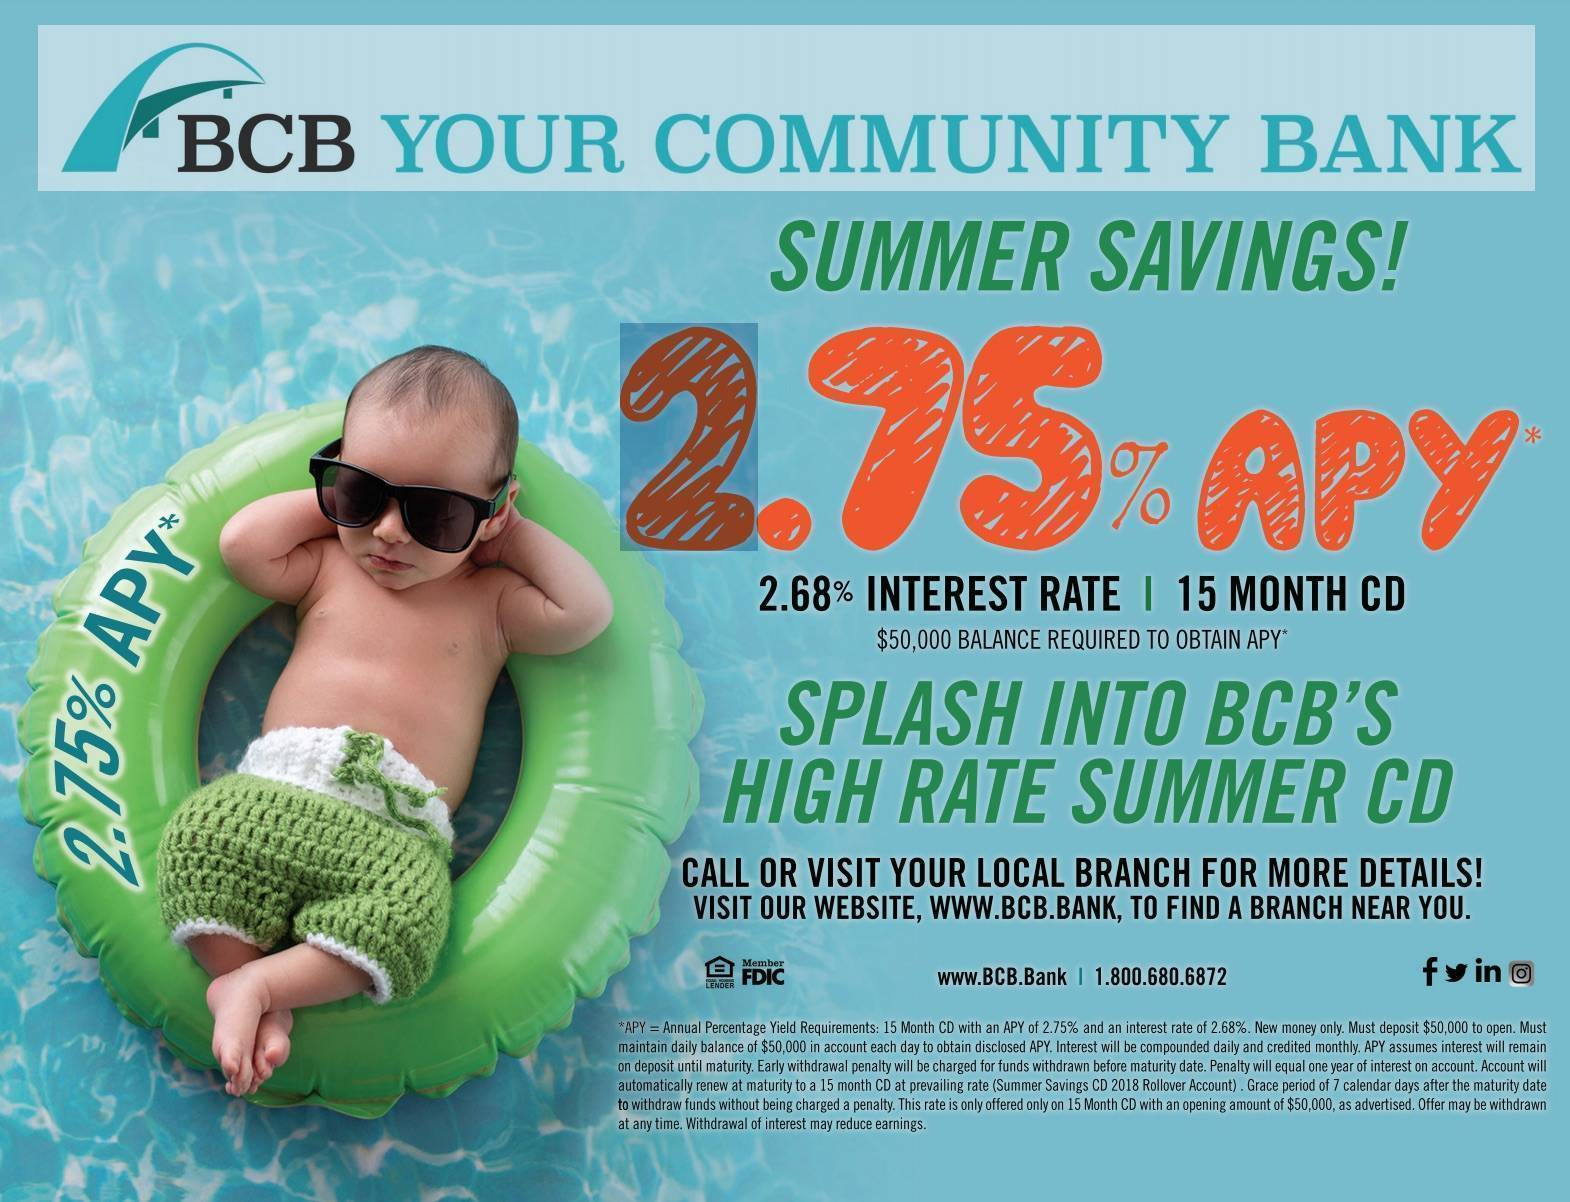 5ff50b38b1e27b4fdc96_0a85a85e3c11419287bd_bcb_community_bank_summer_cd.jpg